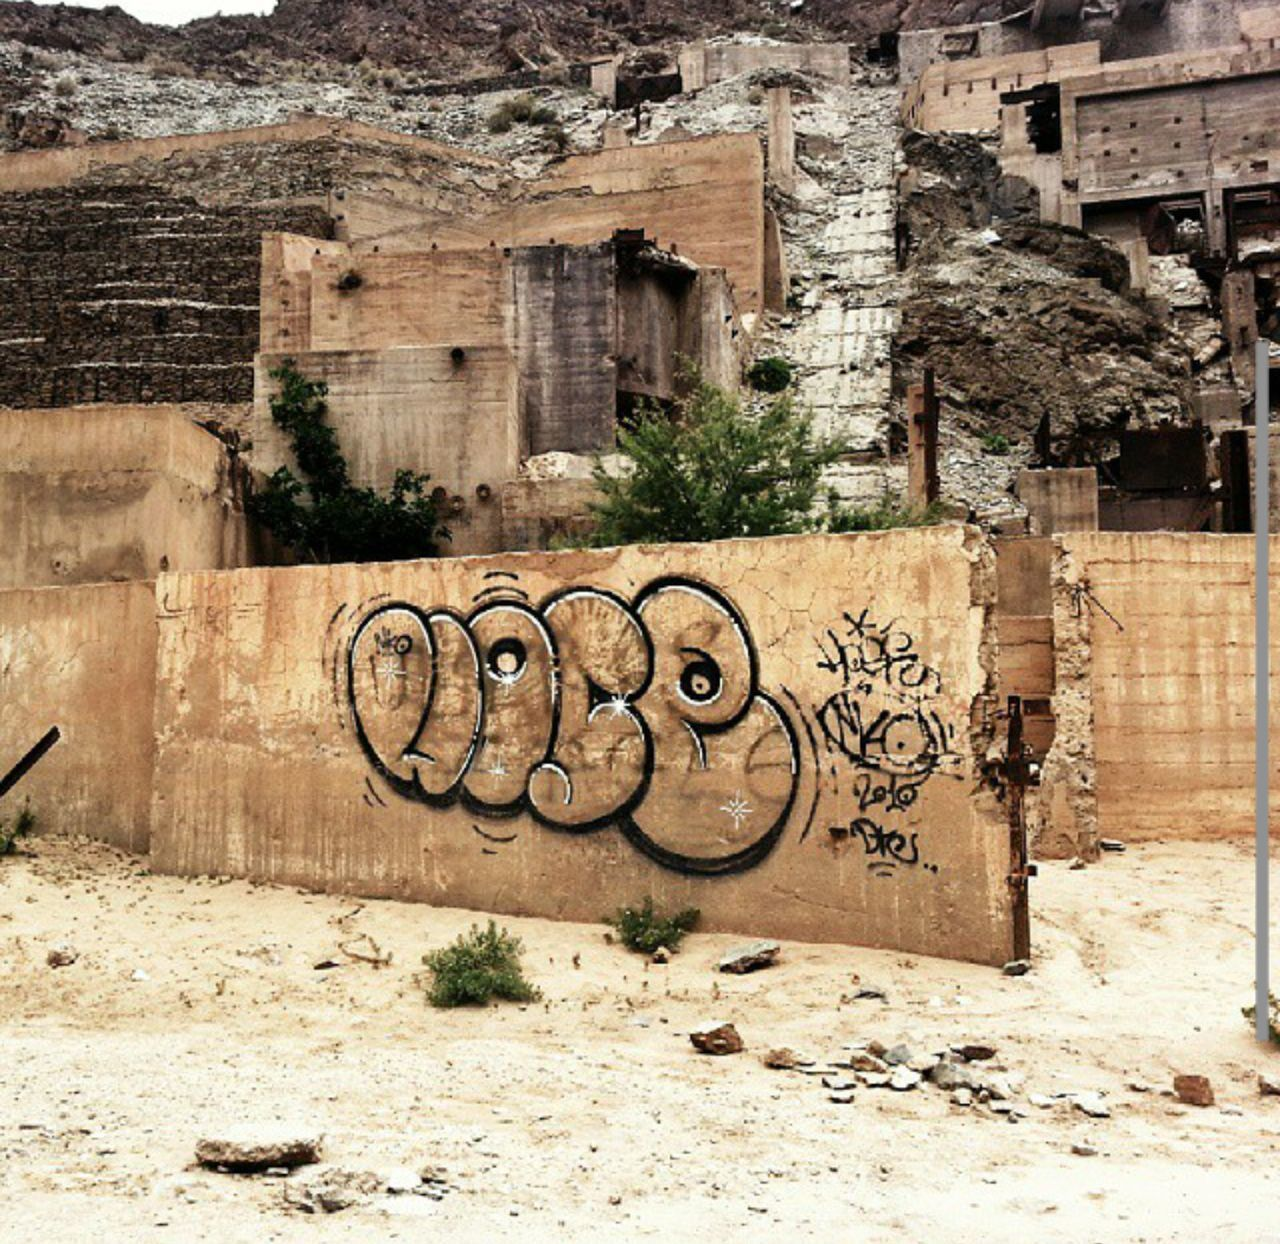 Architecture Building Building Exterior Day Graffiti Art Grafitti No People Outdoors Ruins Ruins Of A Past Tags Wall Art Tranquility Tranquil Scene Cityscape Travel Destinations Ruins_photography Old Buildings